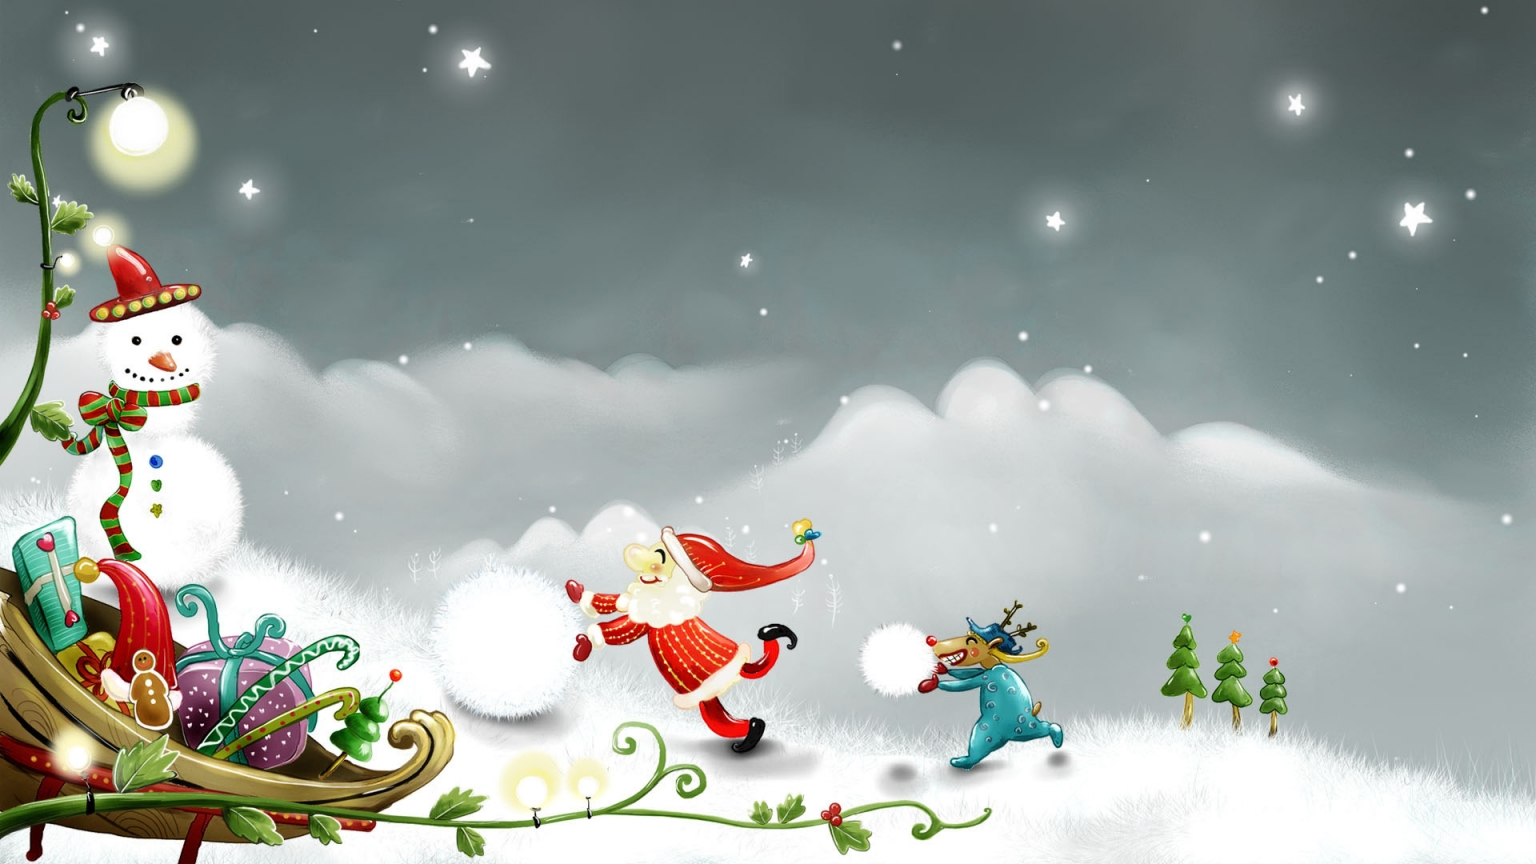 Snowman and Santa Claus for 1536 x 864 HDTV resolution